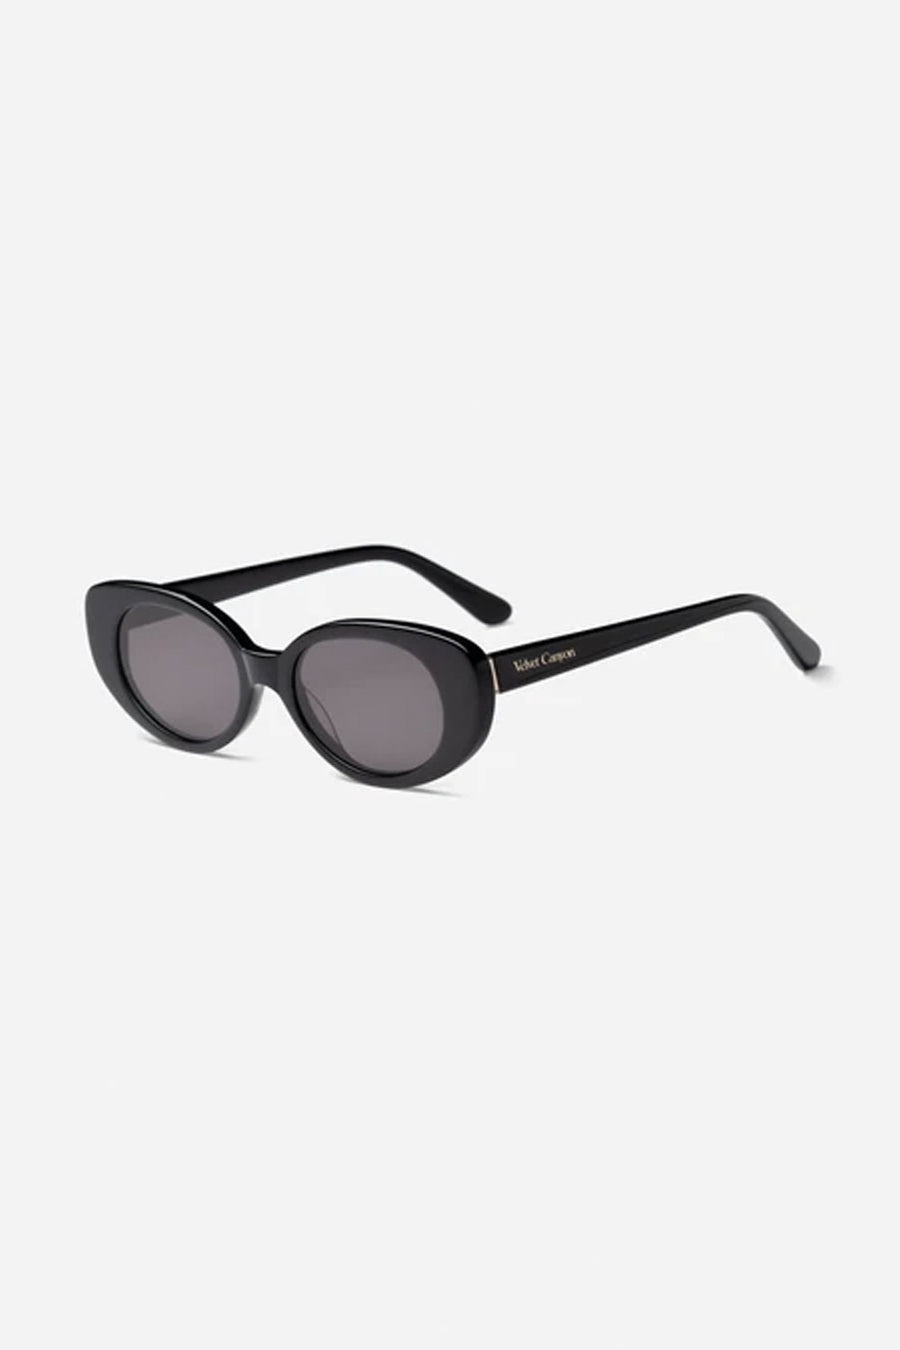 A La Plage | Black | Eyewear NZ | VELVET CANYON NZ | Black Box Boutique Auckland | Womens Fashion NZ